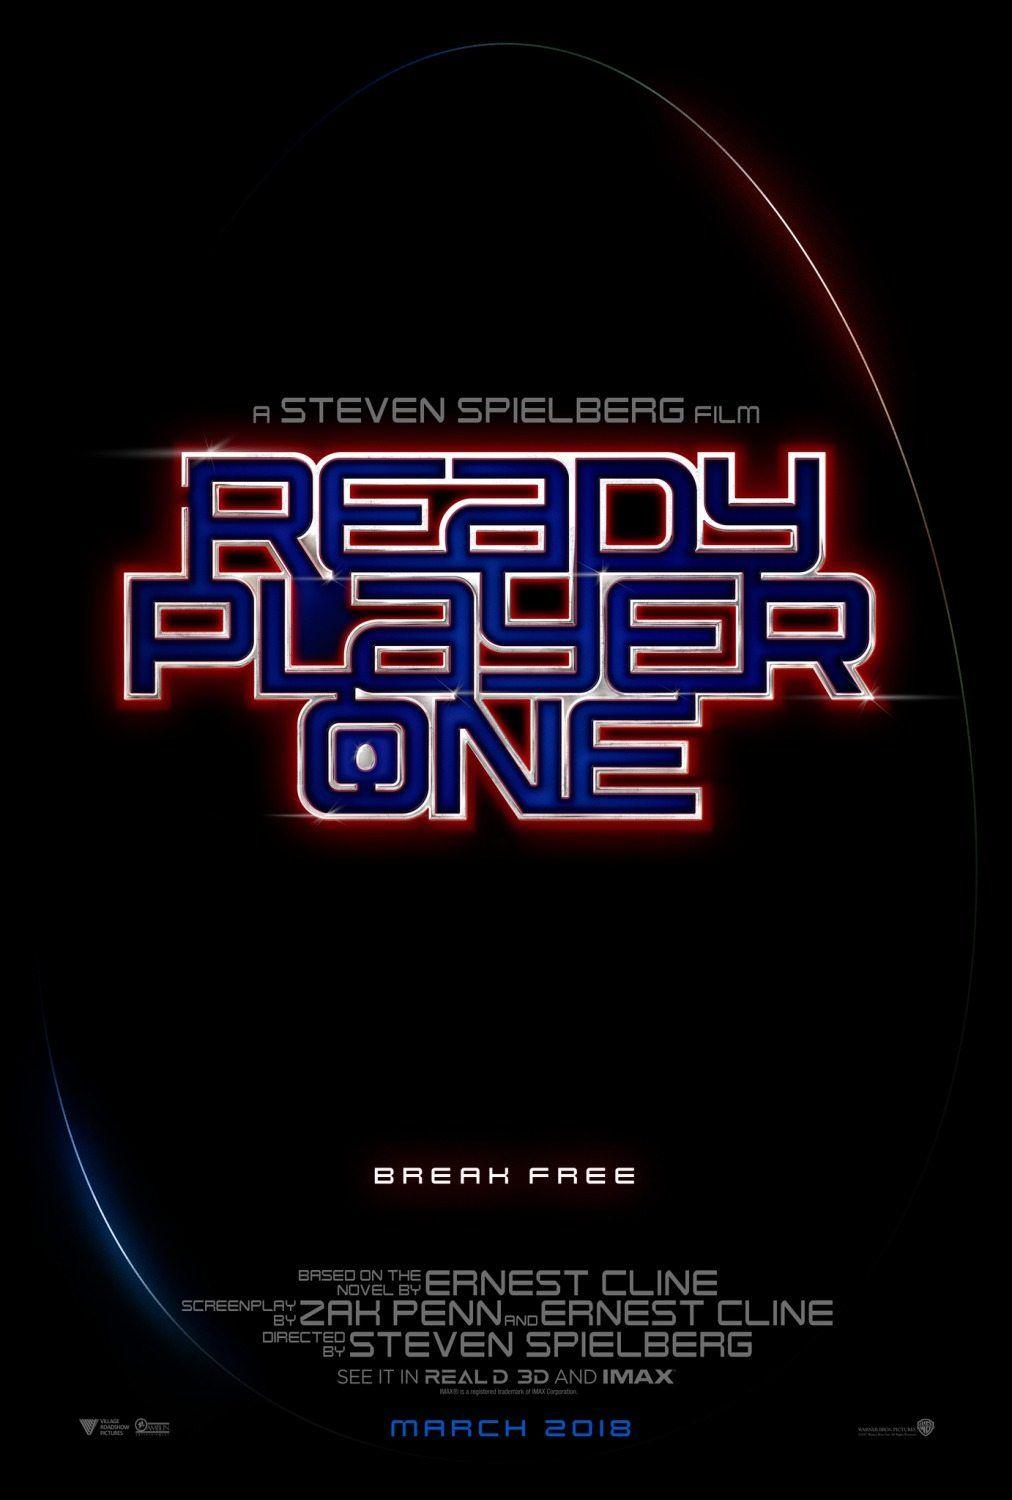 Ready Player One (2018) HD Wallpaper From Gallsource.com | Movie ...